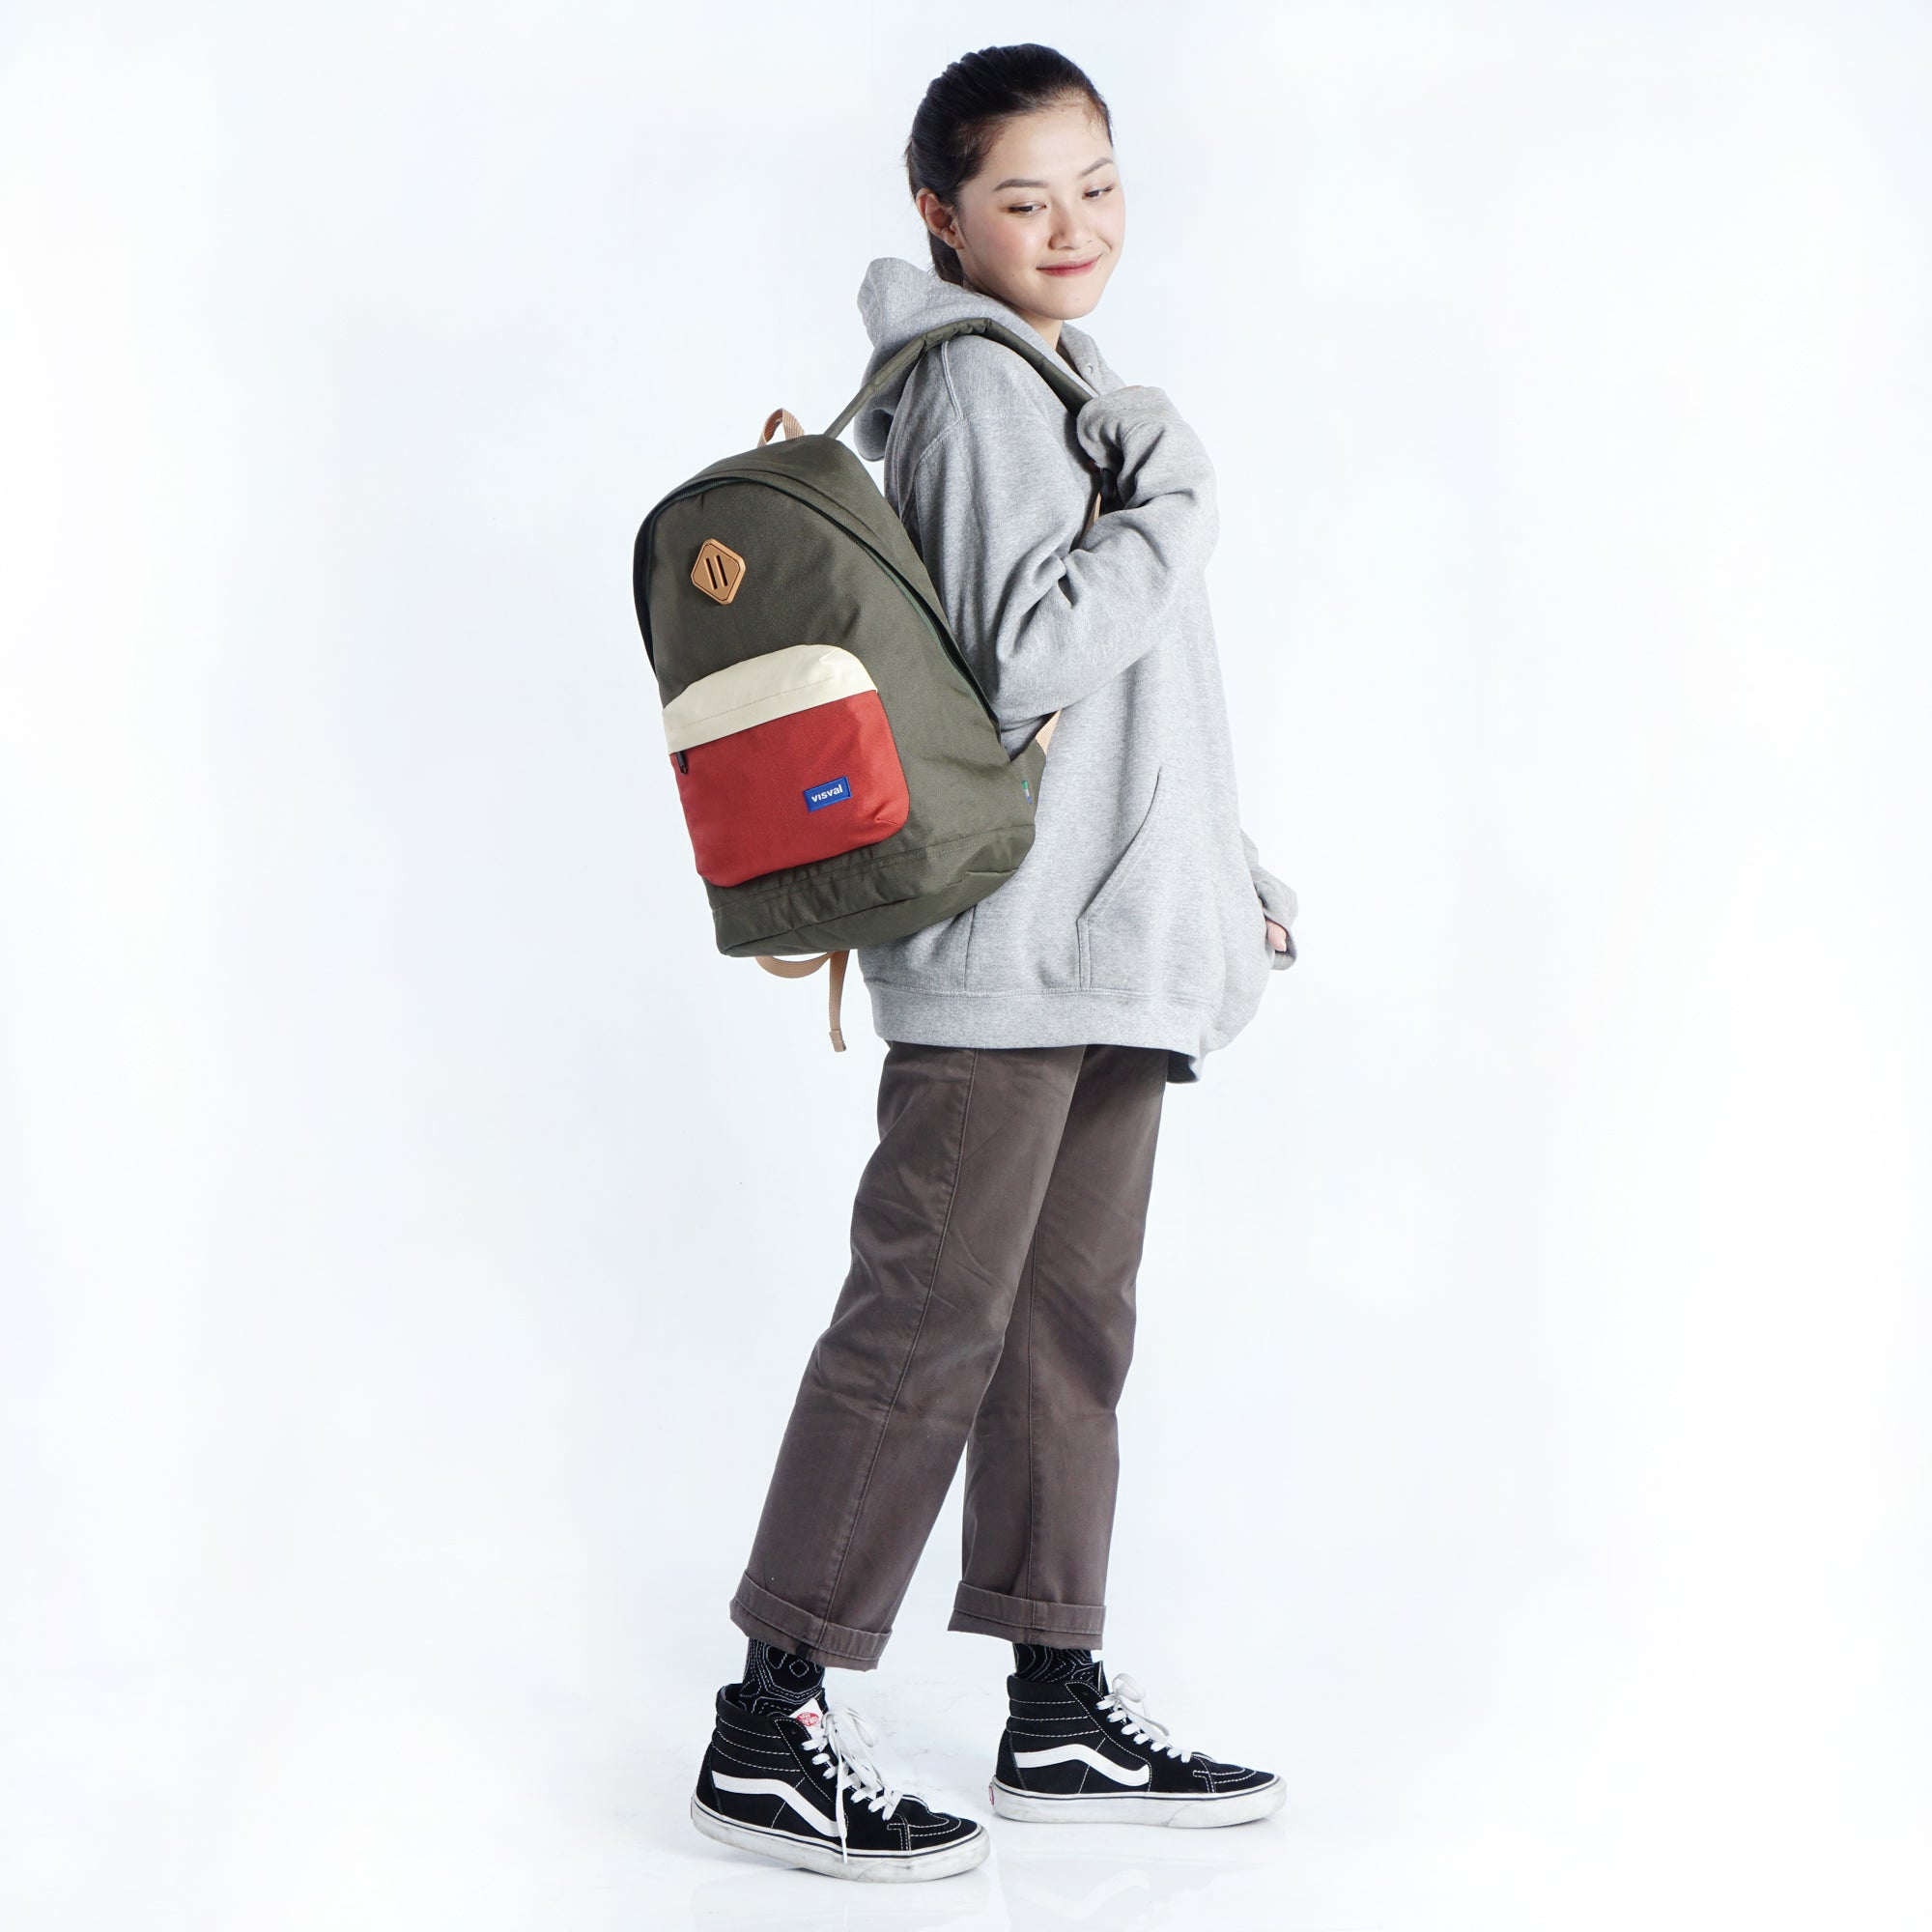 Zema Backpack Olive